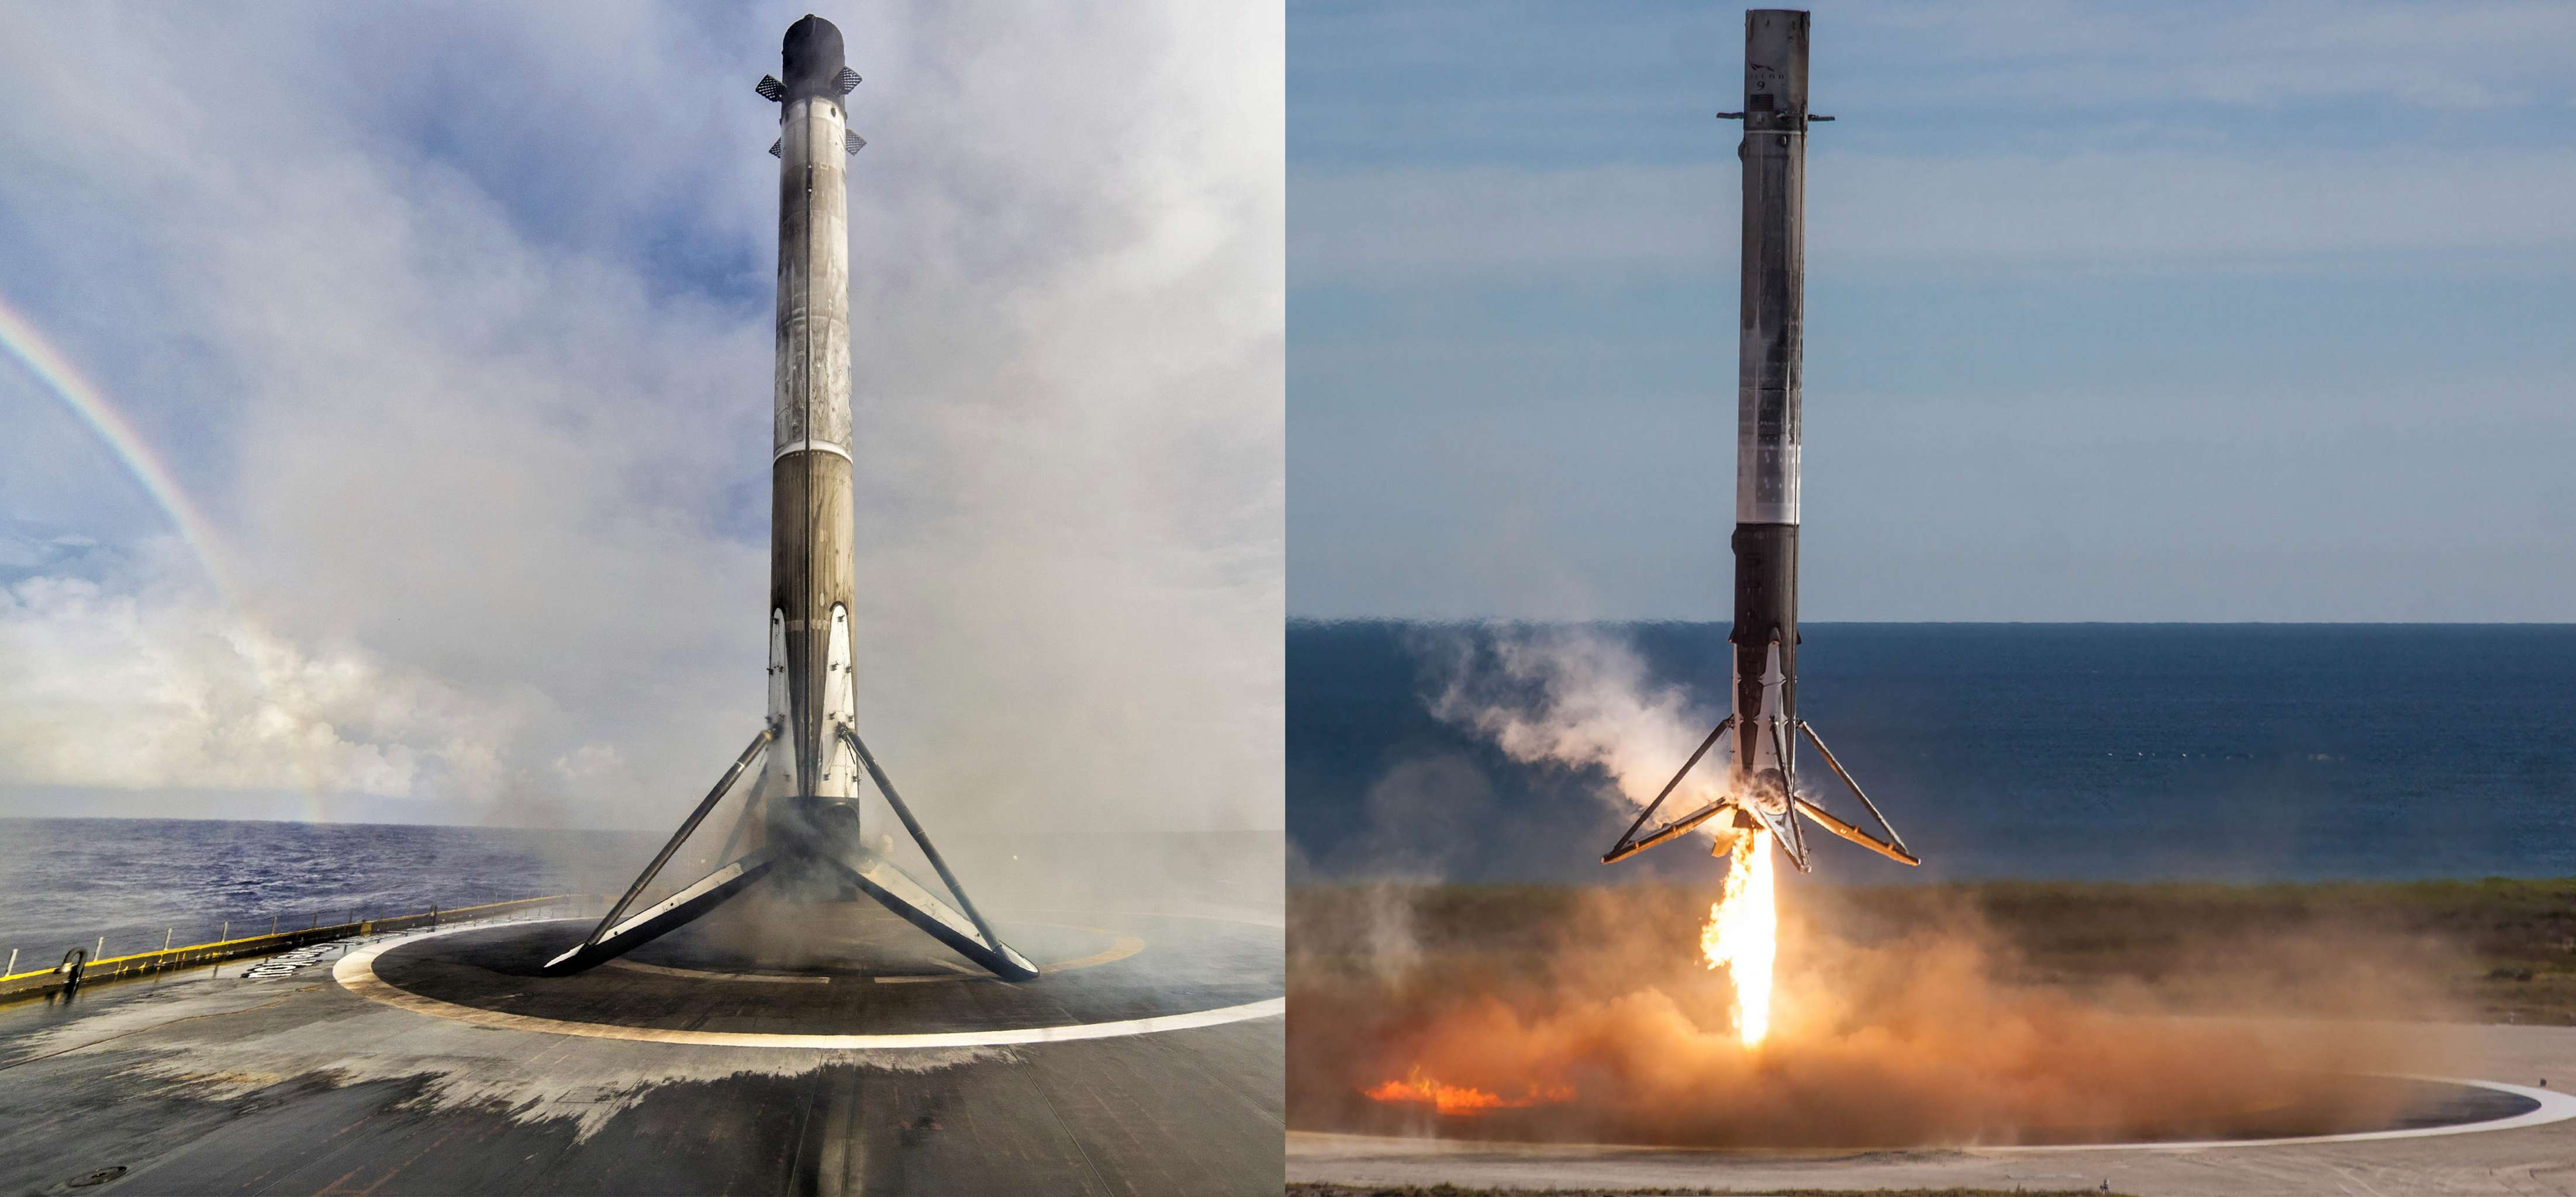 Falcon 9 by land and by sea CRS-13 Es'hail-2 B1047 (SpaceX) 1 (c)